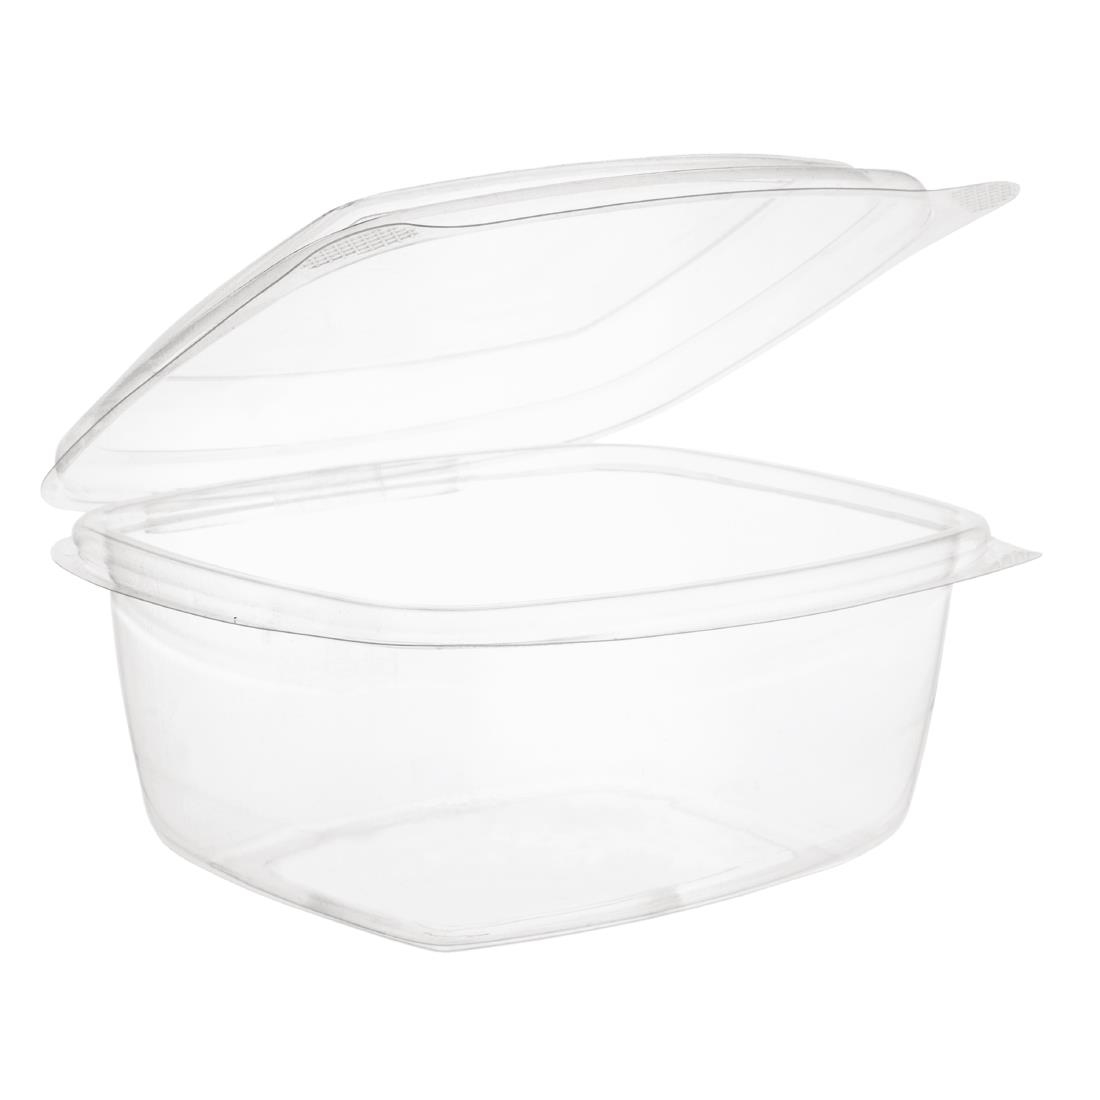 Vegware Compostable PLA Hinged-Lid Deli Containers 500ml / 17oz Pack of 300